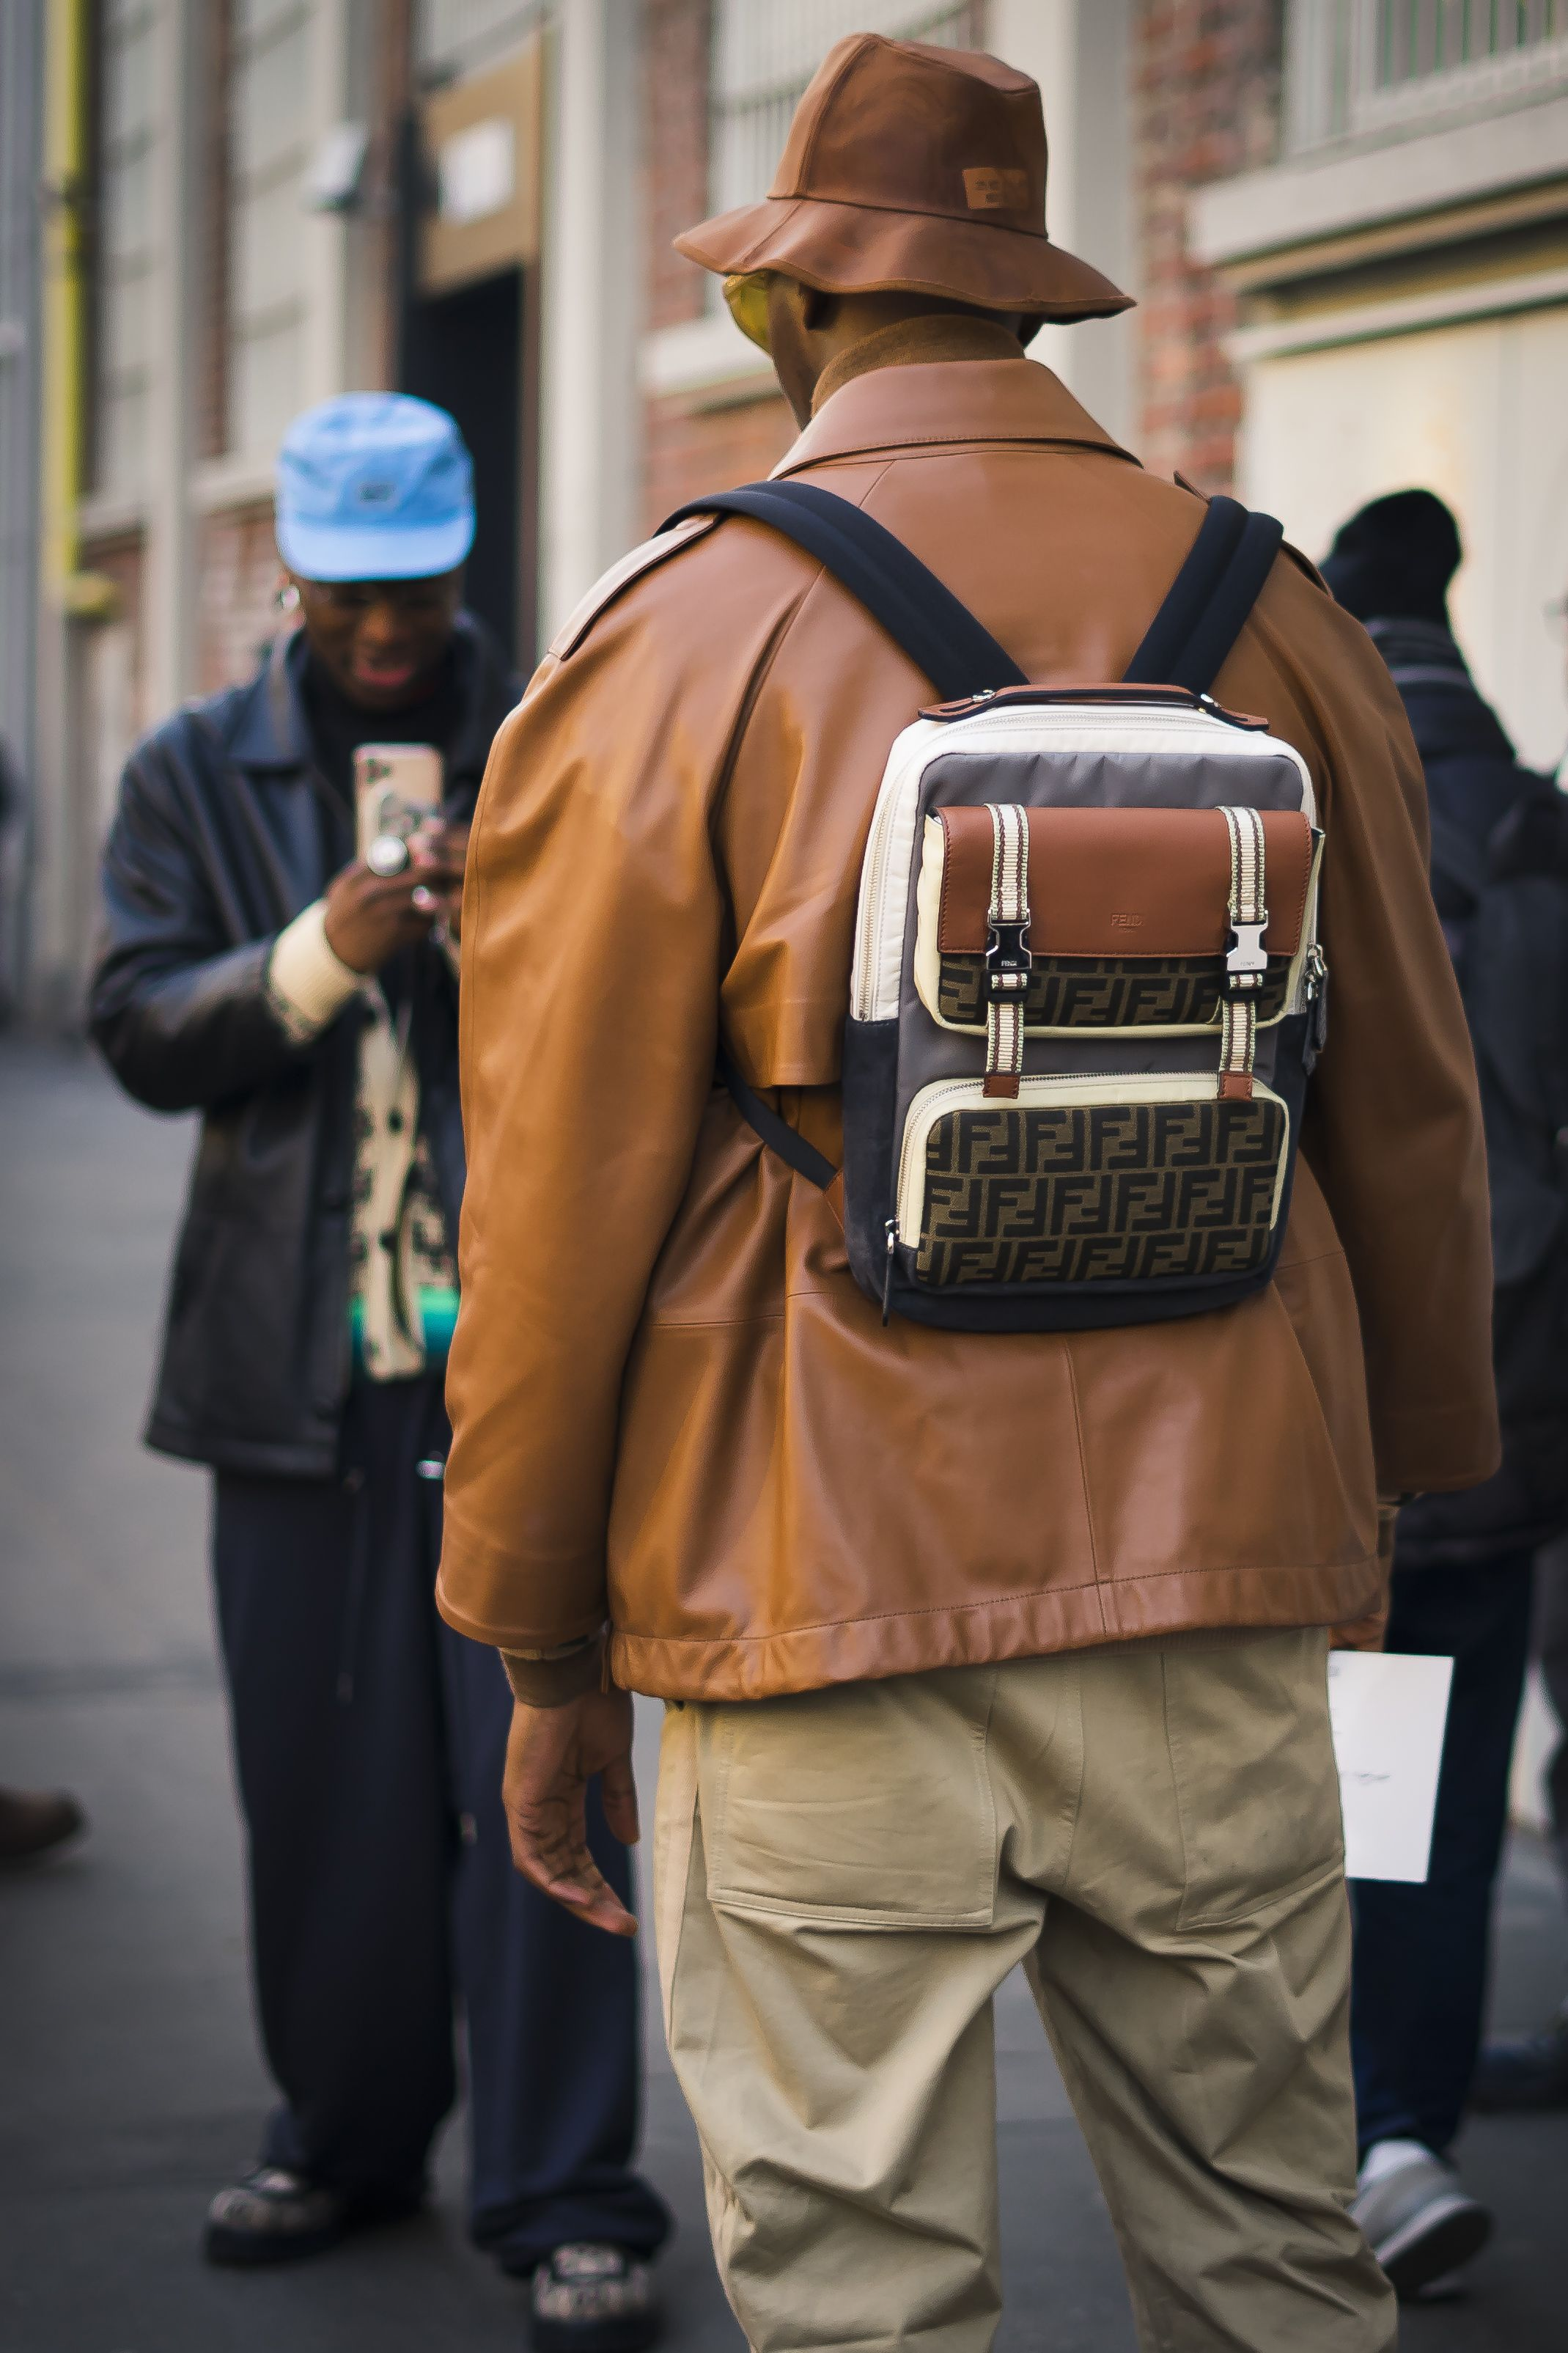 The Best Men's Backpacks Will Make 2020 The Year You Ditch Your 'Daunt Books' Tote